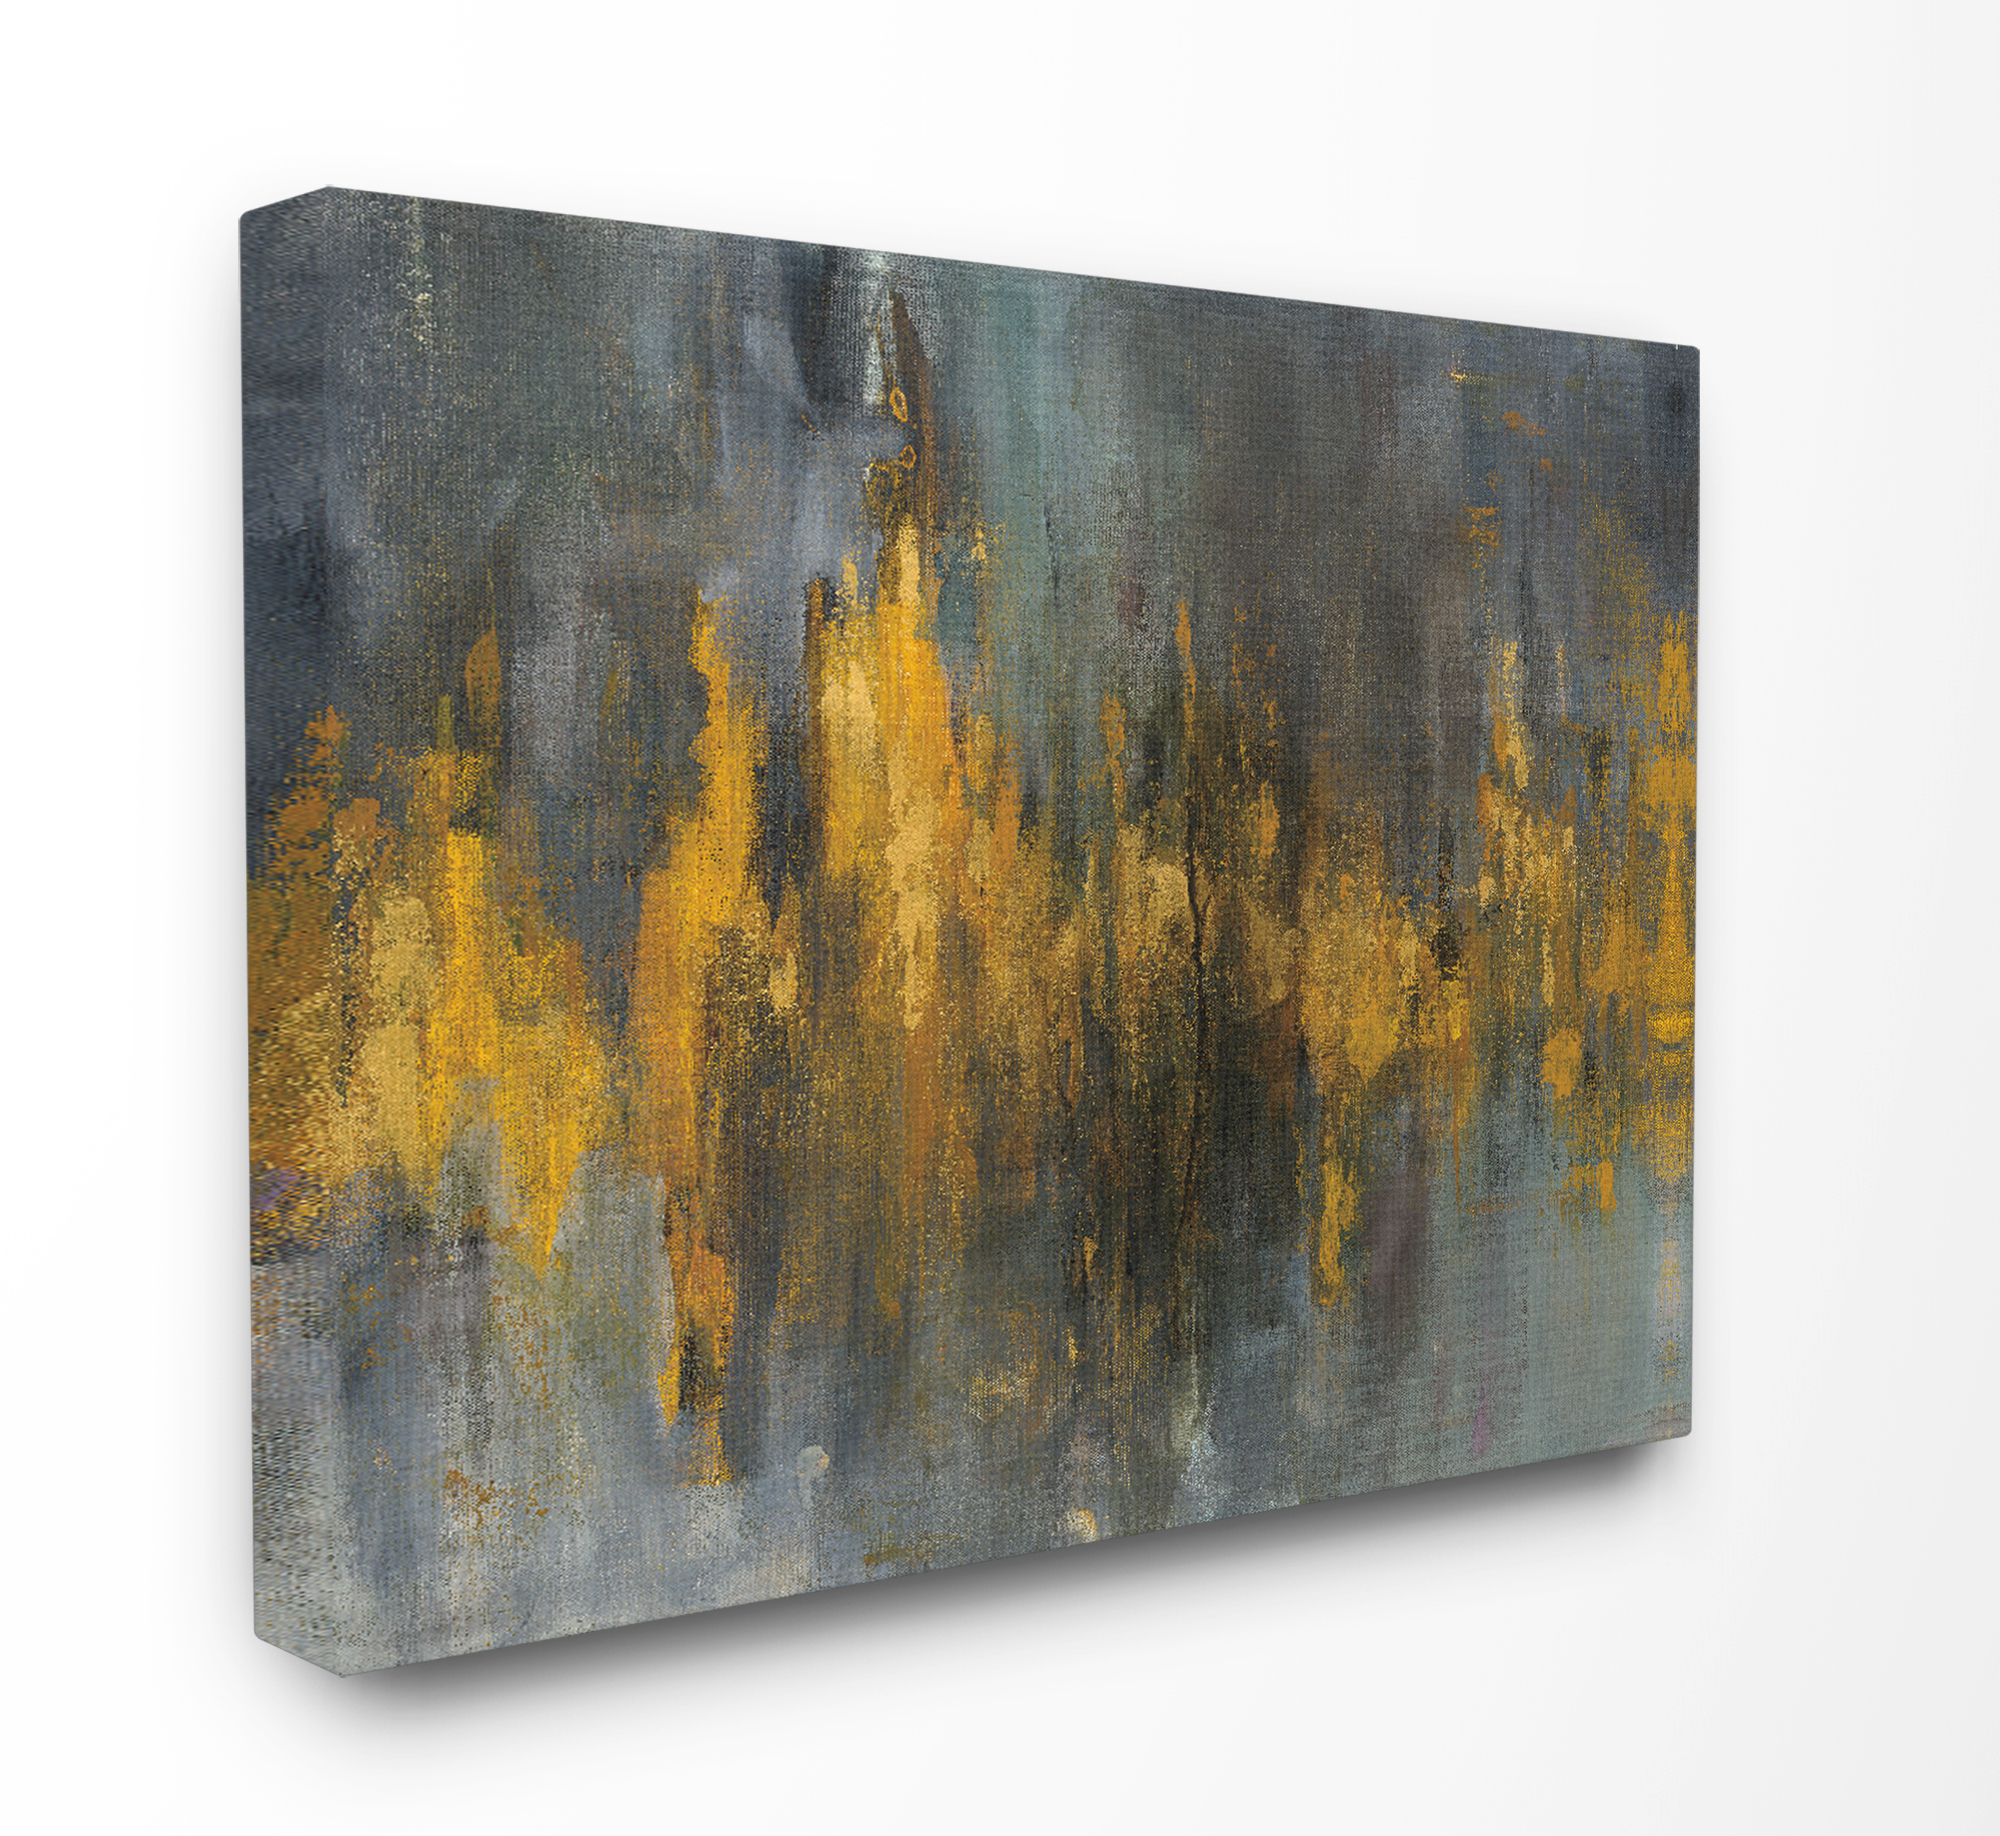 The Stupell Home Decor Collection Black and Gold Abstract Fire Oversized Stretched Canvas Wall Art